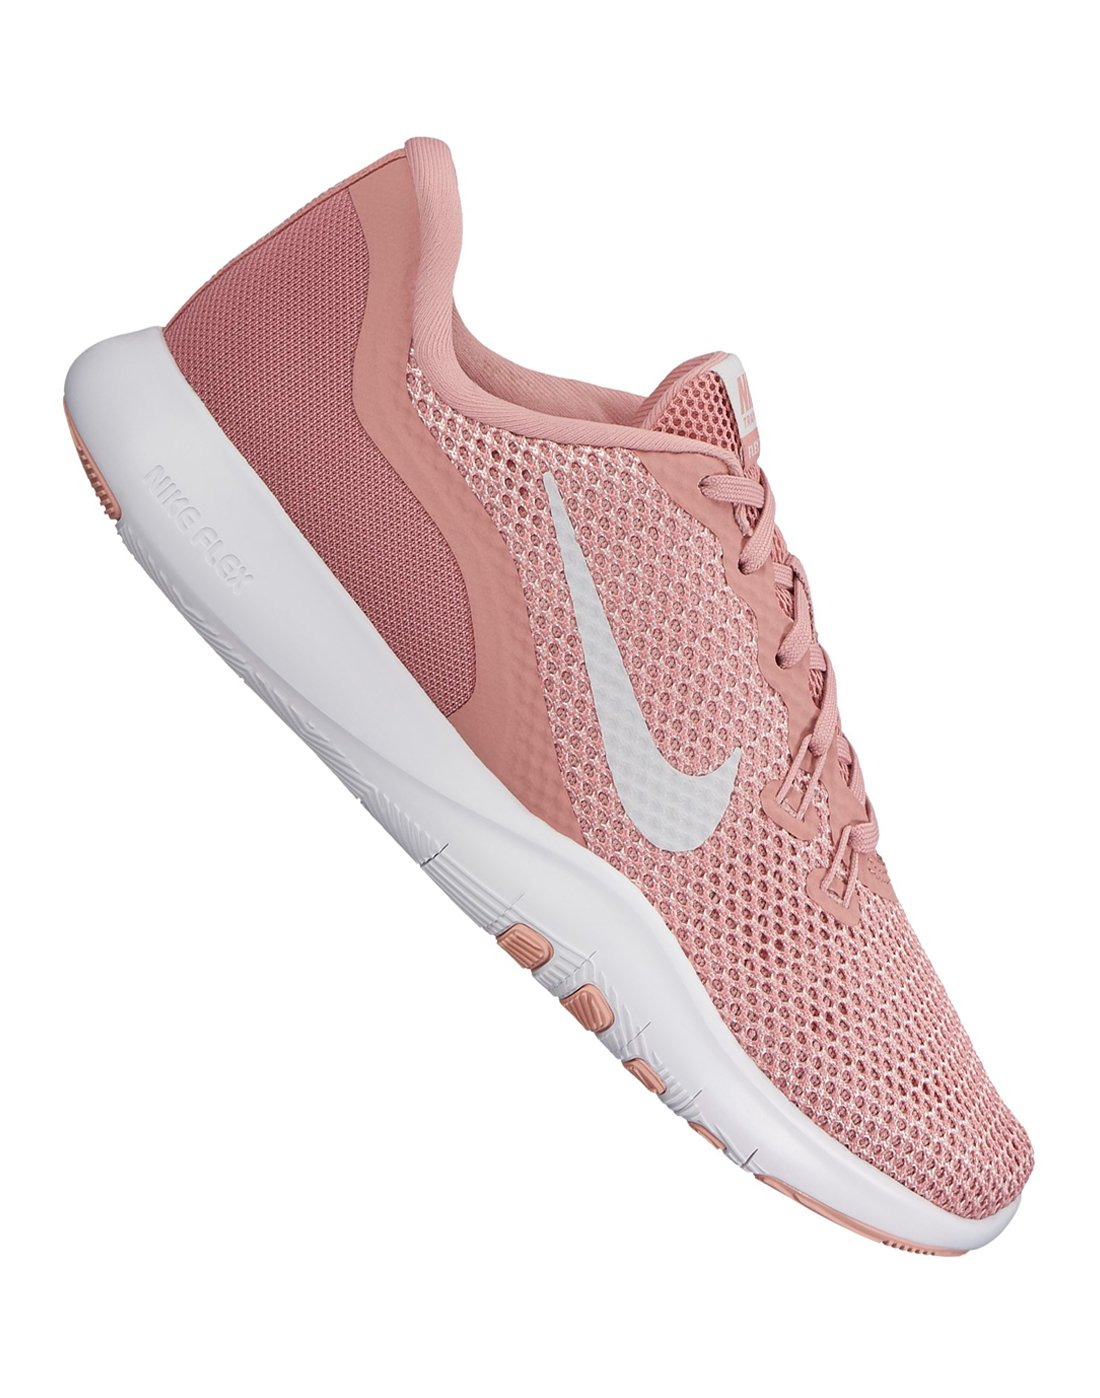 8e8475a652d2 Women s Nike Flex Trainer 7